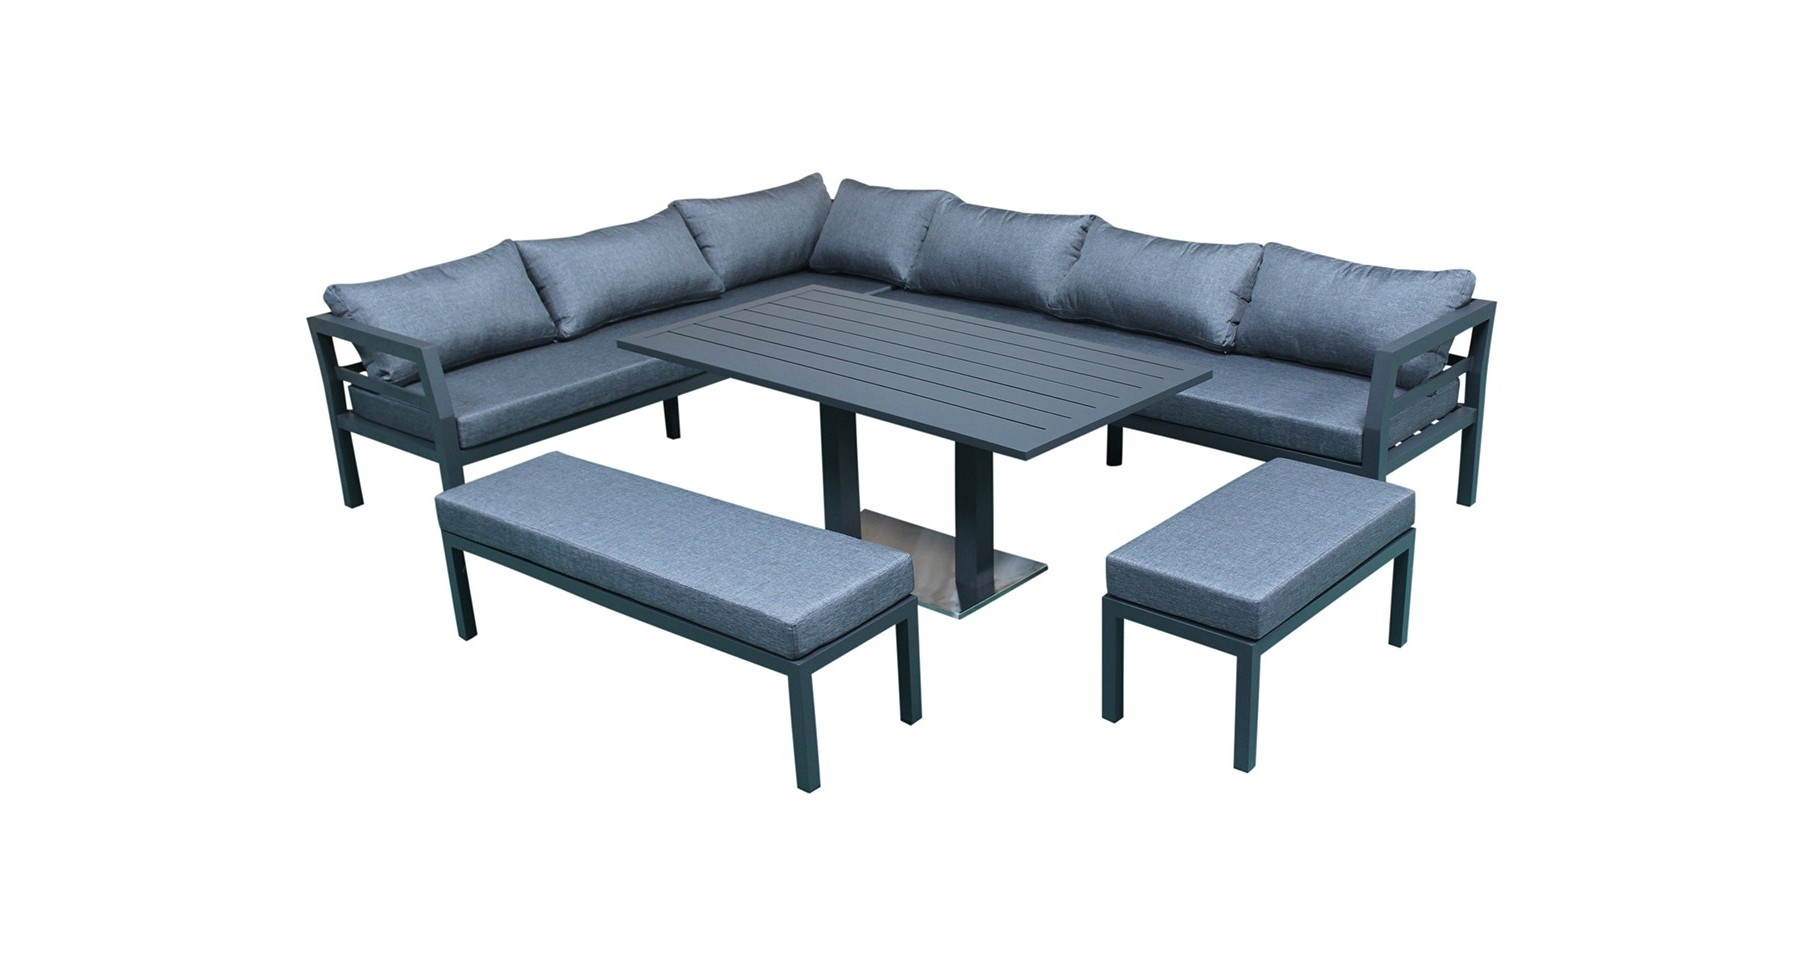 Salon Jardin 12 Personnes Salon De Jardin D 39angle Contemporain 12 Places En